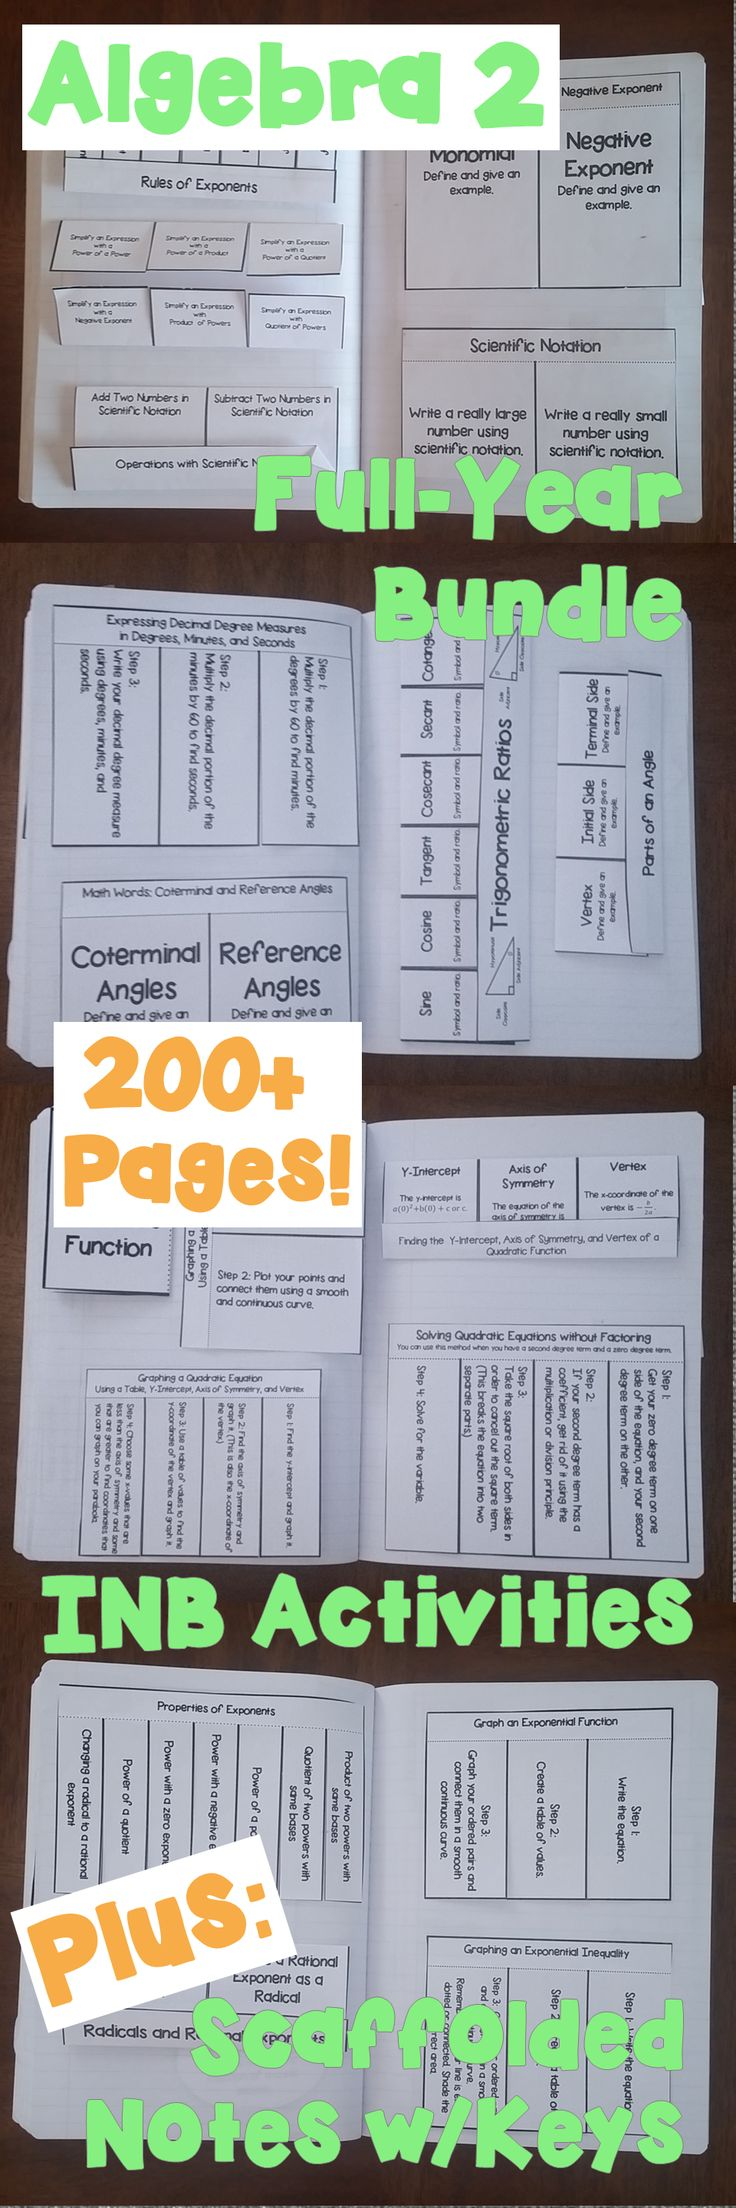 Packed full of interactive notebook activities for Algebra 2/Integrated Math students, this HUGE bundle also includes scaffolded notes w/answer keys.  Includes the following sections: Solving Equations & Inequalities, Linear Relations & Functions, Solving Systems of Equations in 2 and 3 Variables, Matrices, Polynomials, Trig Functions, Quadratic Functions, Conic Sections, Polynomial Functions, and more! #inb #algebra2 #scaffoldednotes $